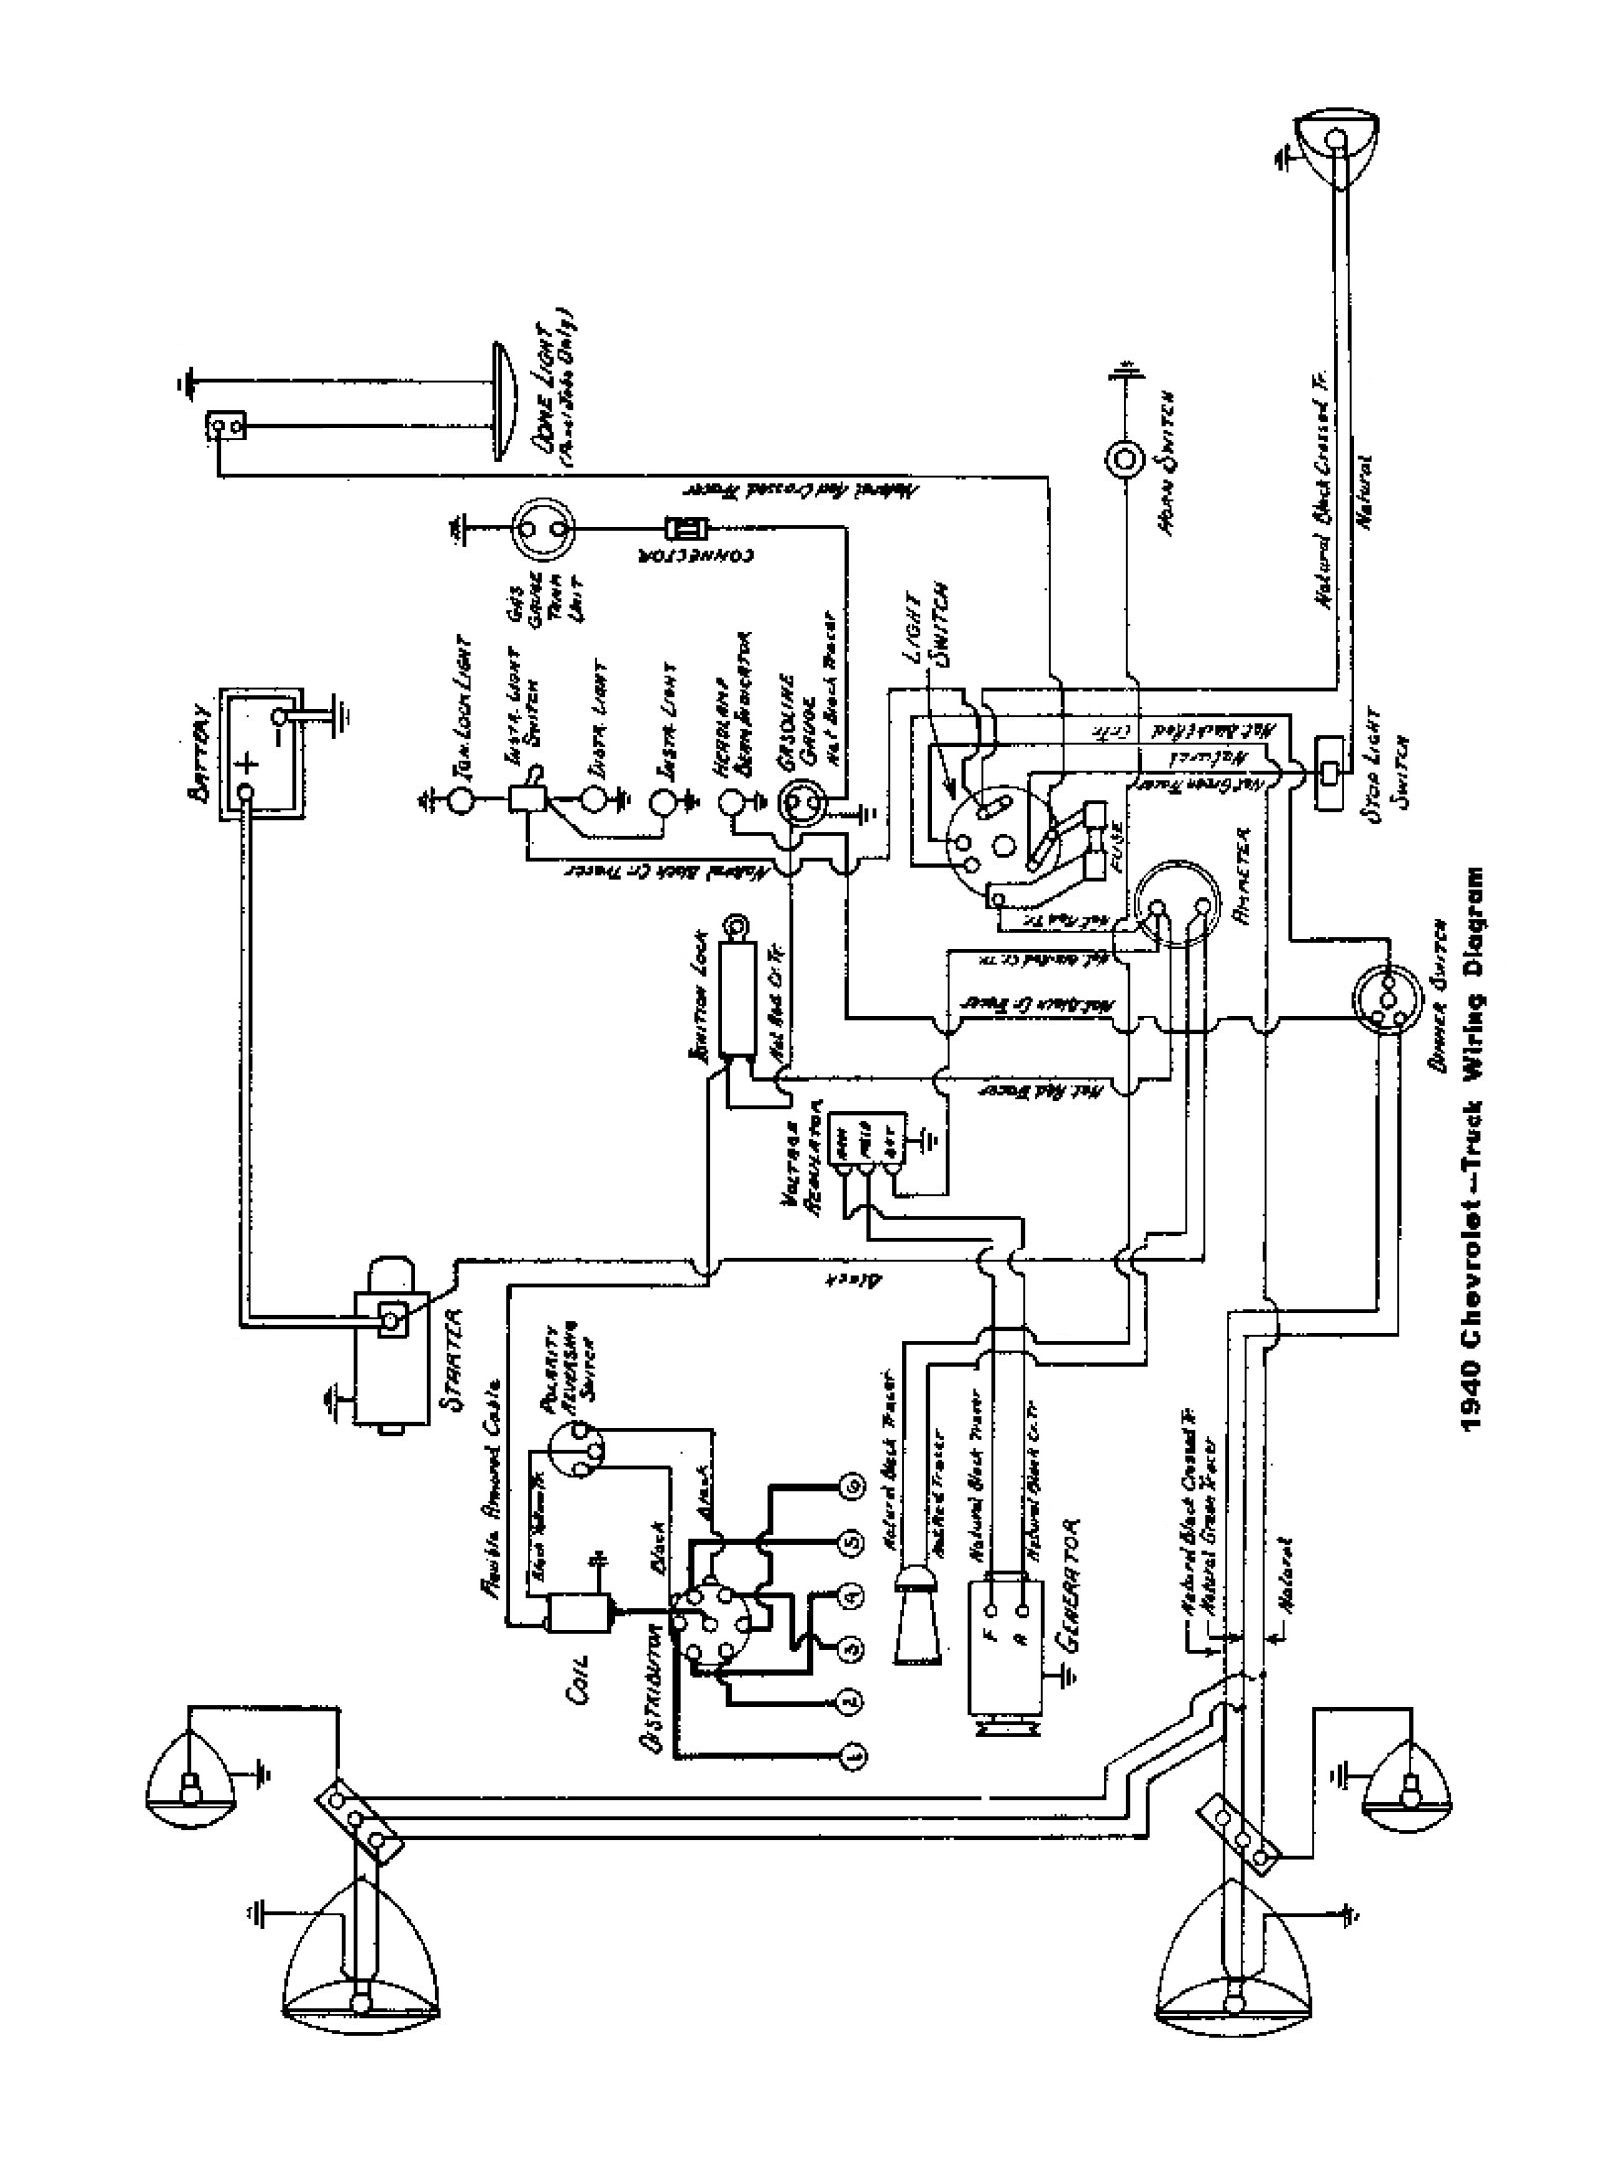 1957 chevy truck wiring diagram 1957 chevy heater wiring